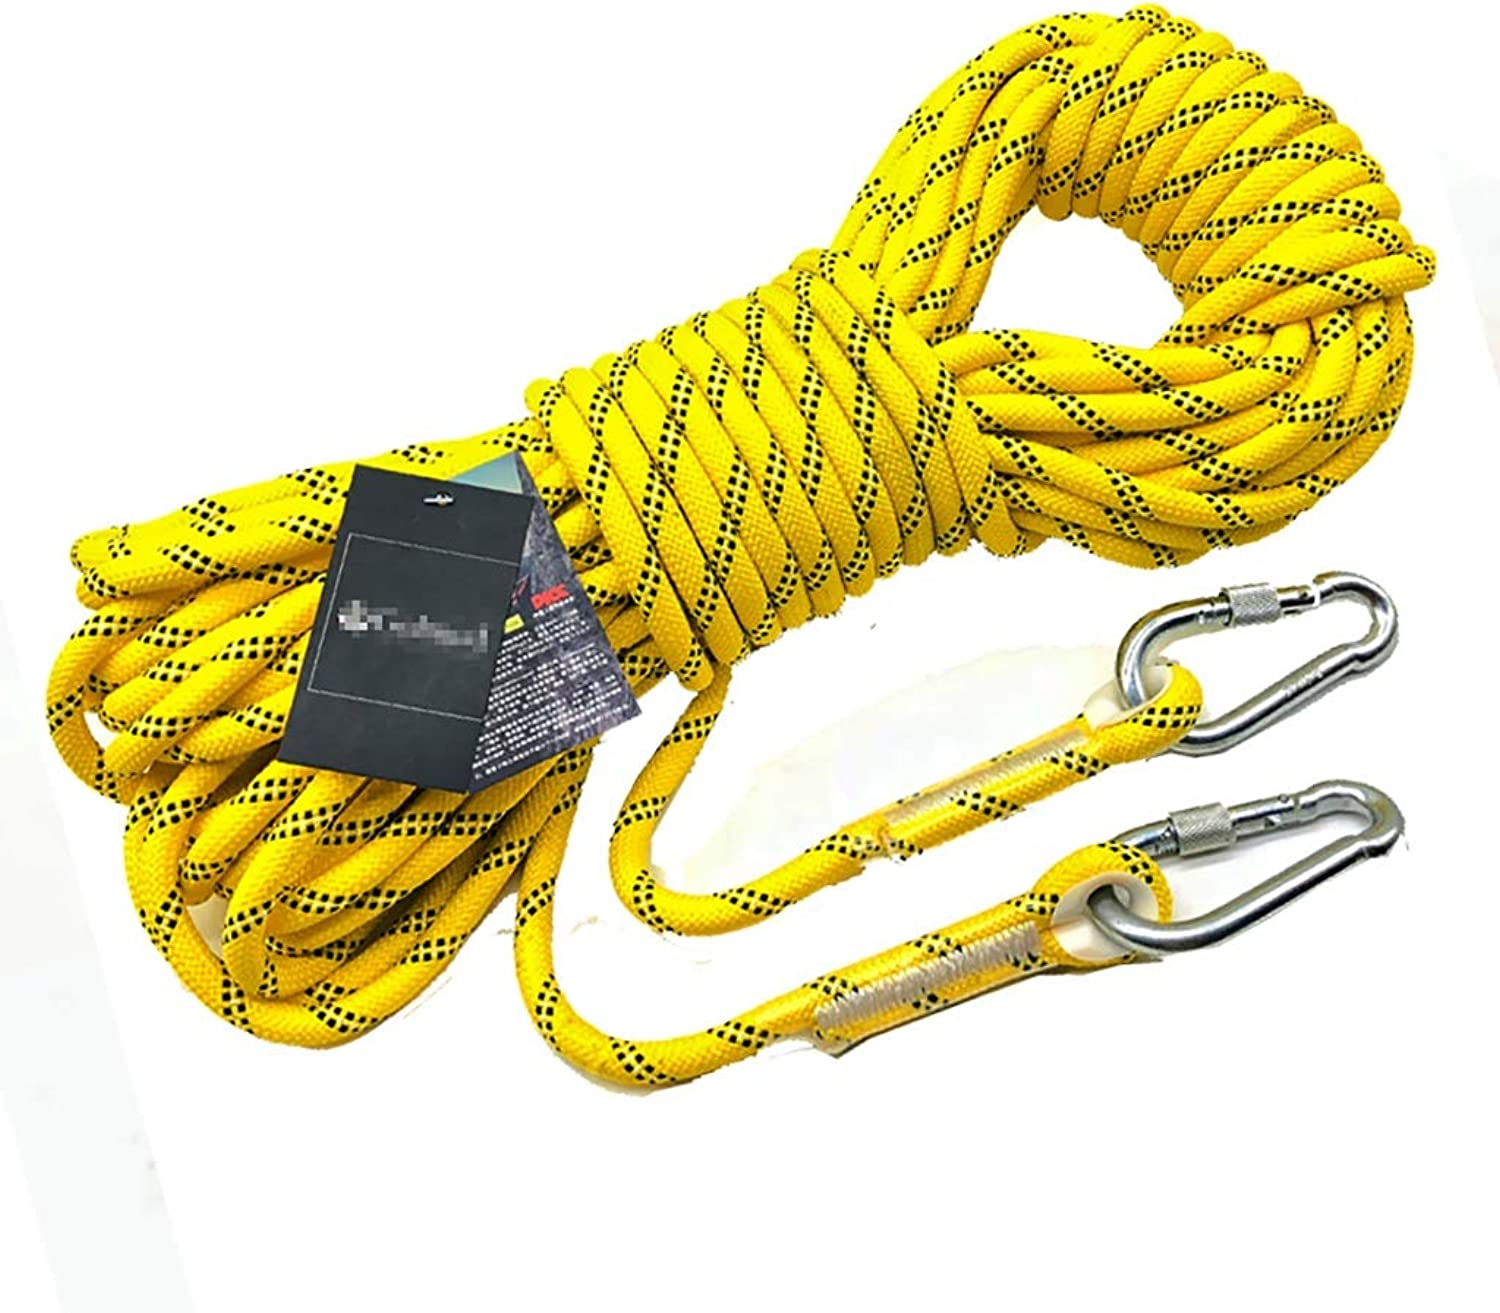 Climbing Rope Safe Rappelling Rope Wear Resistant Lifeline Suitable for Camping Rock Climbing 8mm in Diameter Yellow